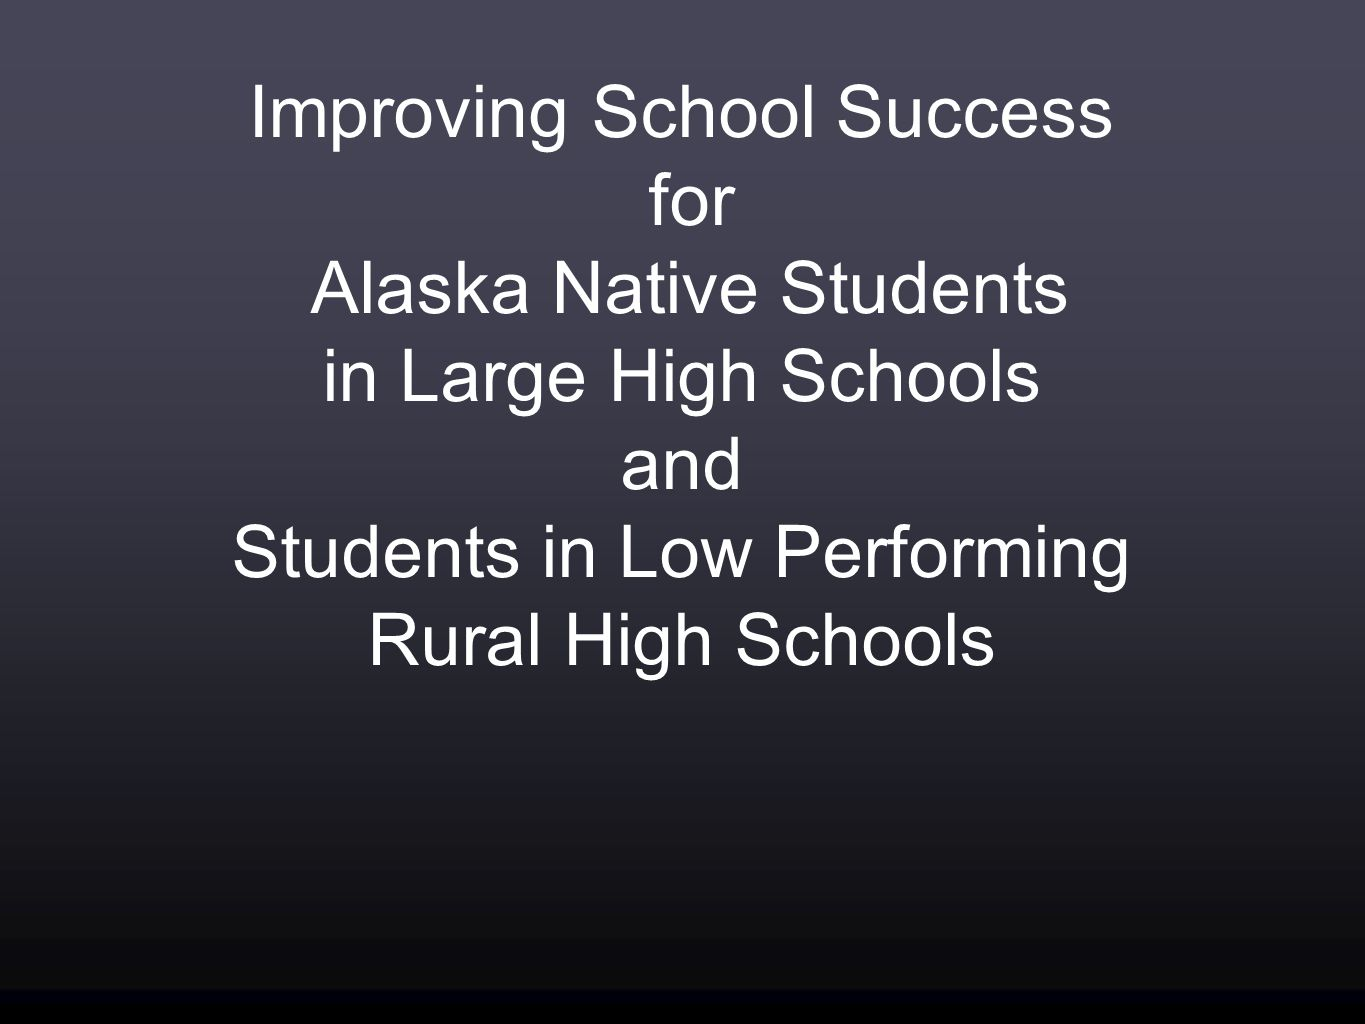 Improving School Success for Alaska Native Students in Large High Schools and Students in Low Performing Rural High Schools